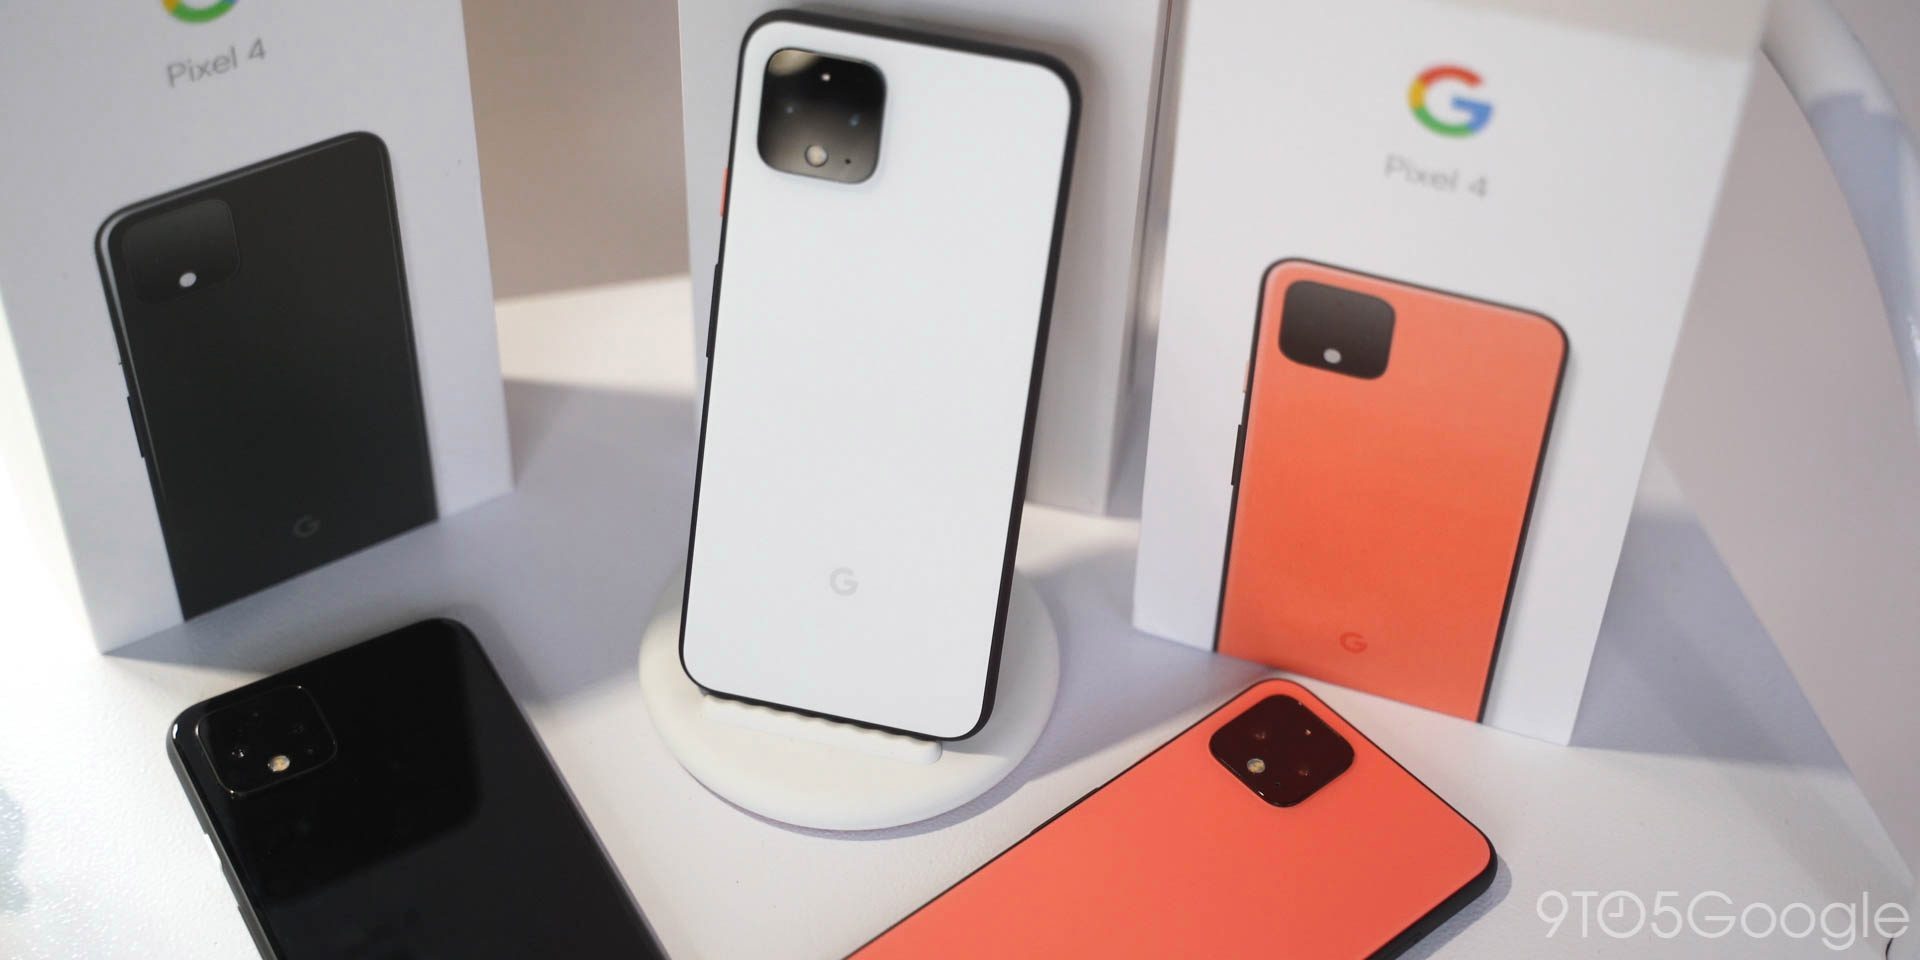 Verizon will reportedly stop selling Google phones, starting with Pixel 4a